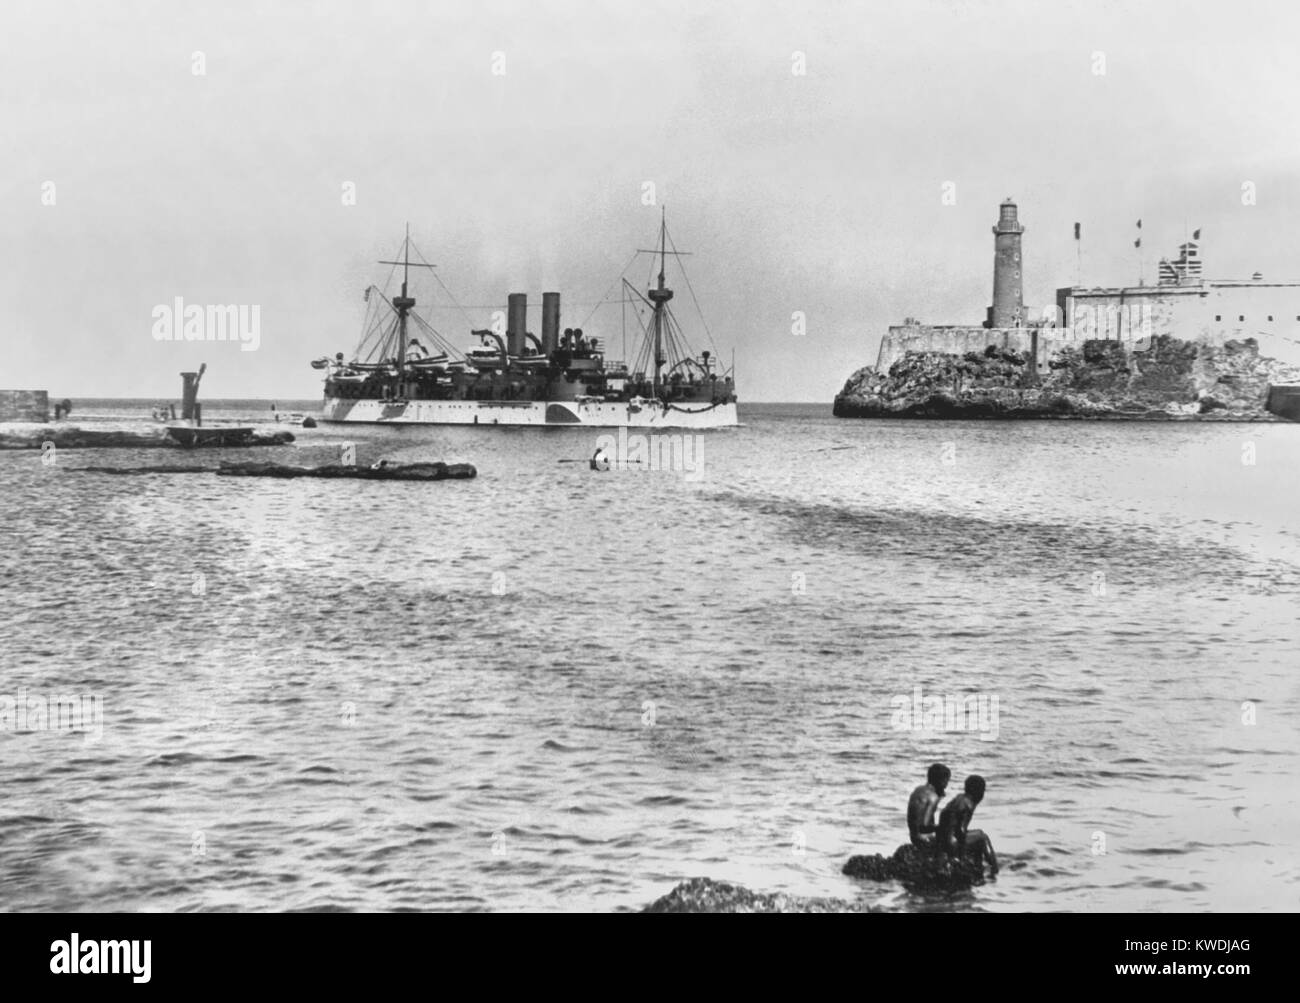 USS MAINE entering Havana Harbor in January 1898. She was sent to protect U.S. interests during the Cuban revolt - Stock Image